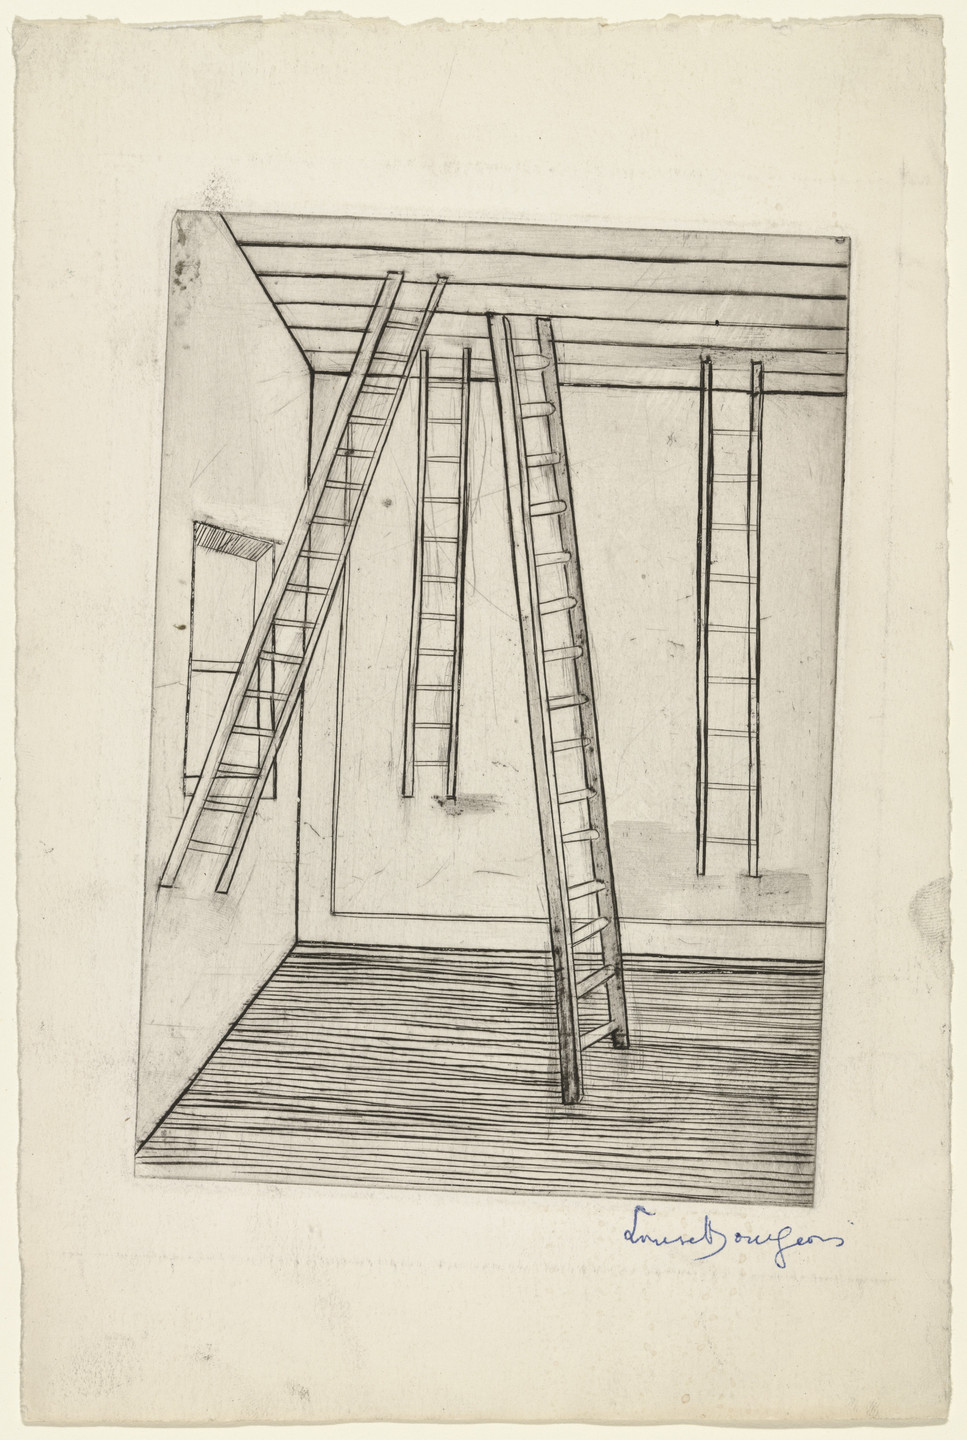 Louise Bourgeois. Plate 8 of 9, from the illustrated book, He Disappeared into Complete Silence, first edition. 1946-1947